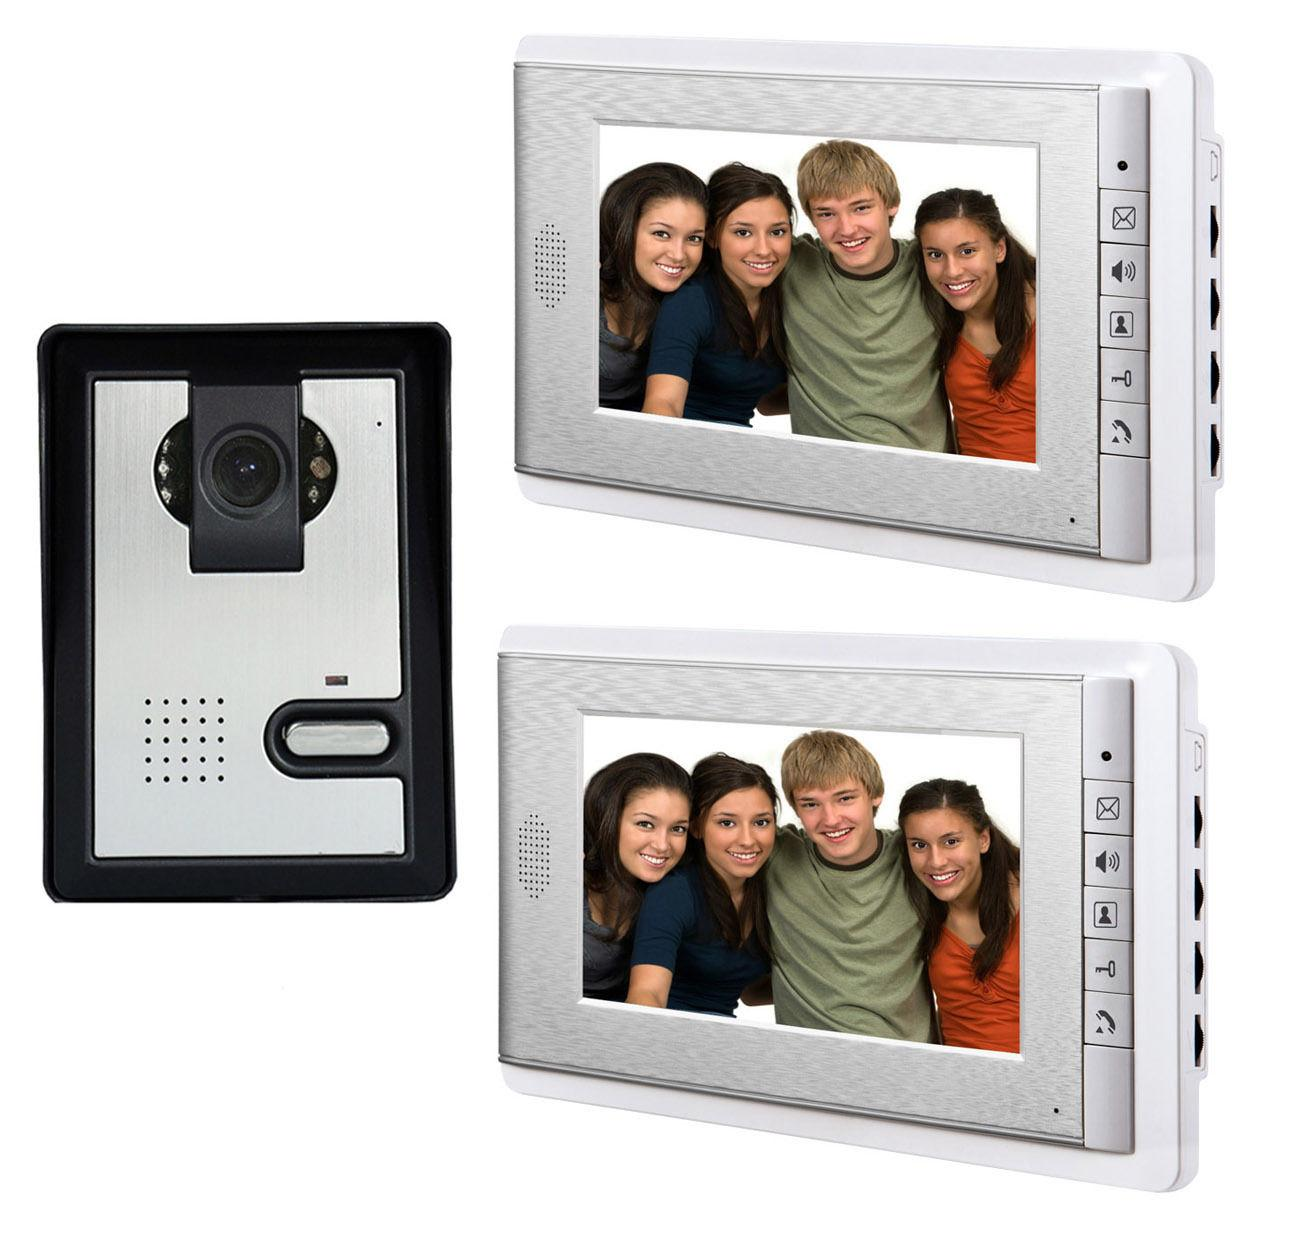 7 Inch Video Door Phone Doorbell Intercom System Night Vision Camera Video Door Bell Video Doorphone Intercom 2-Monitor Kit